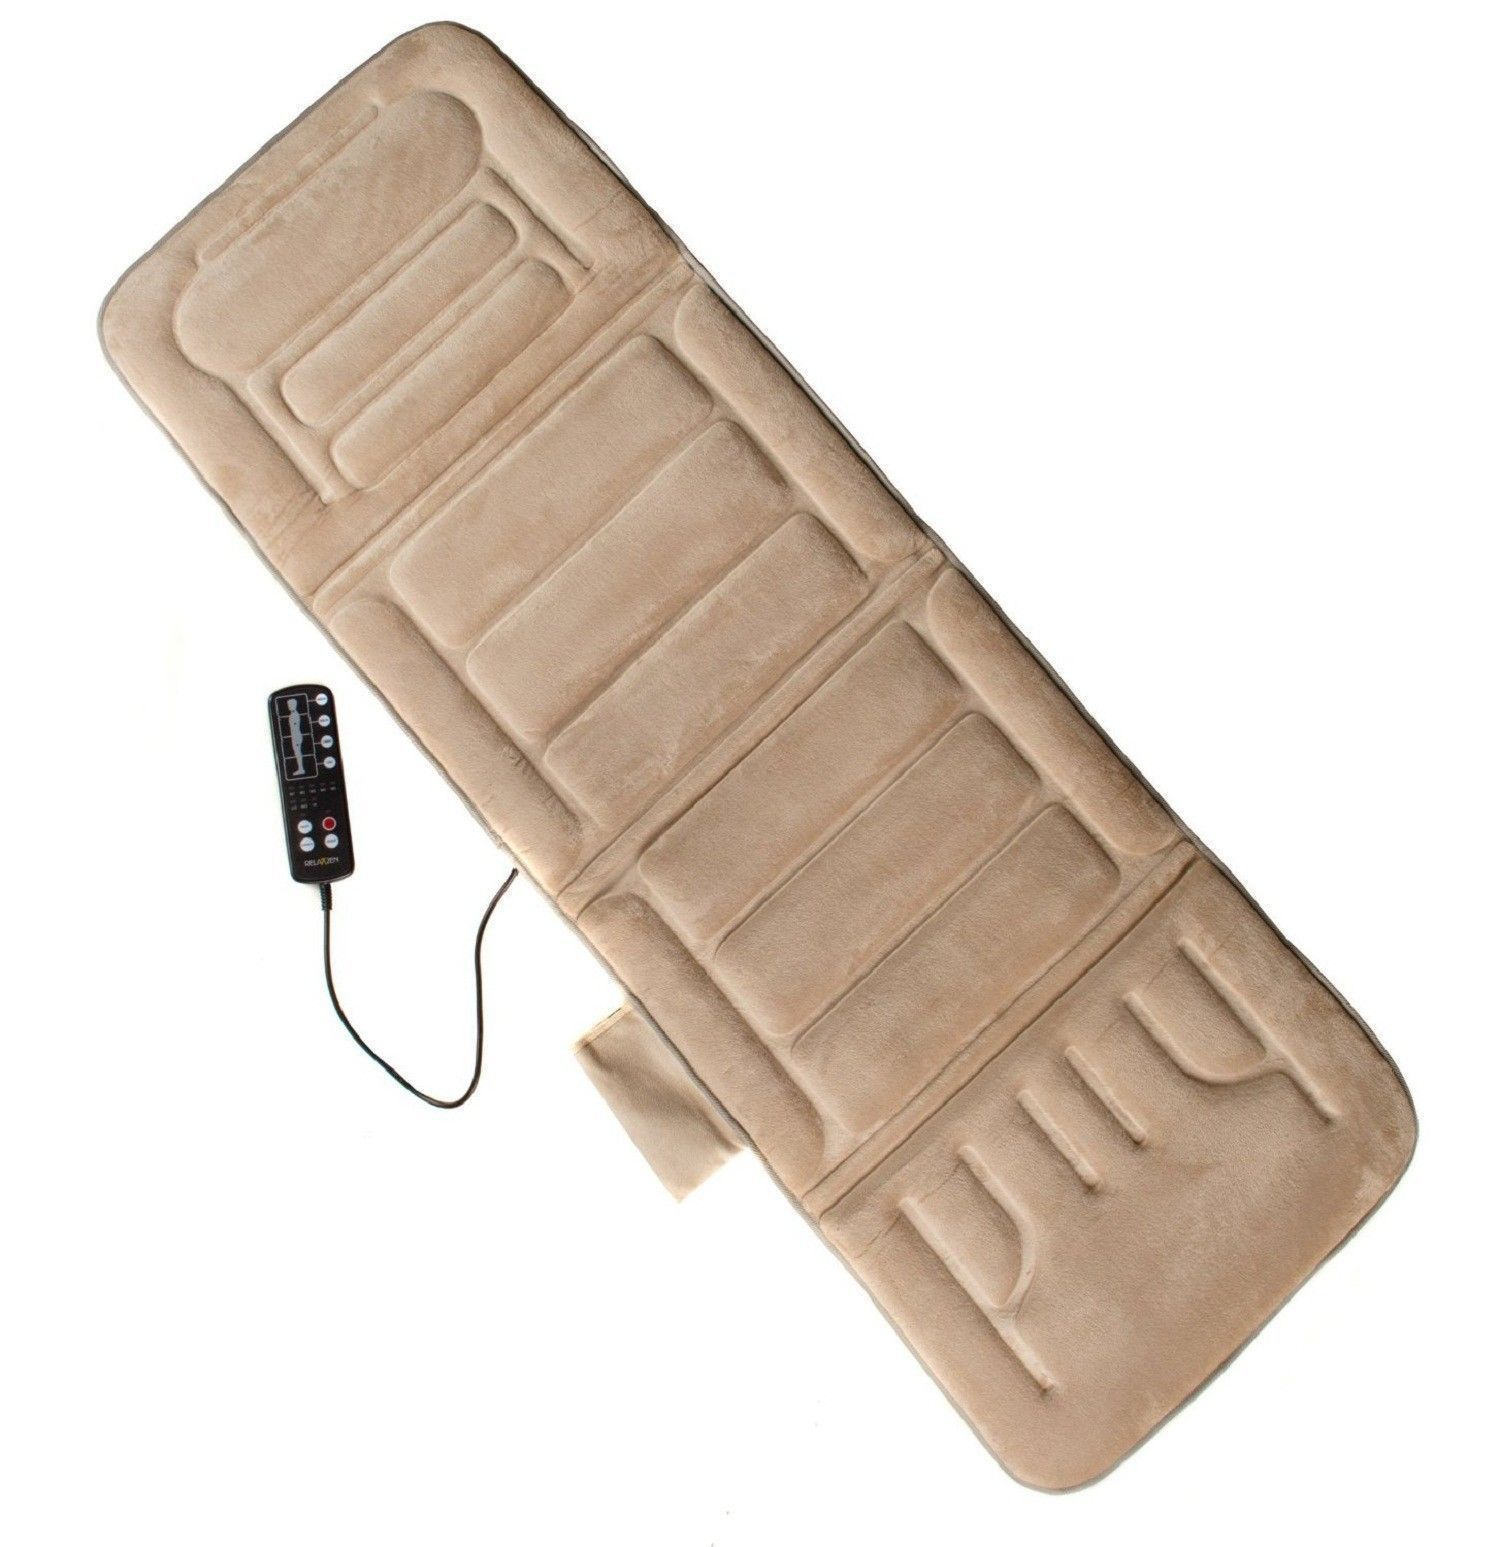 Mattress Pad Warmer ... Cushion Mat Vibrating Bed Hot Pad Back Body Massager - Massagers